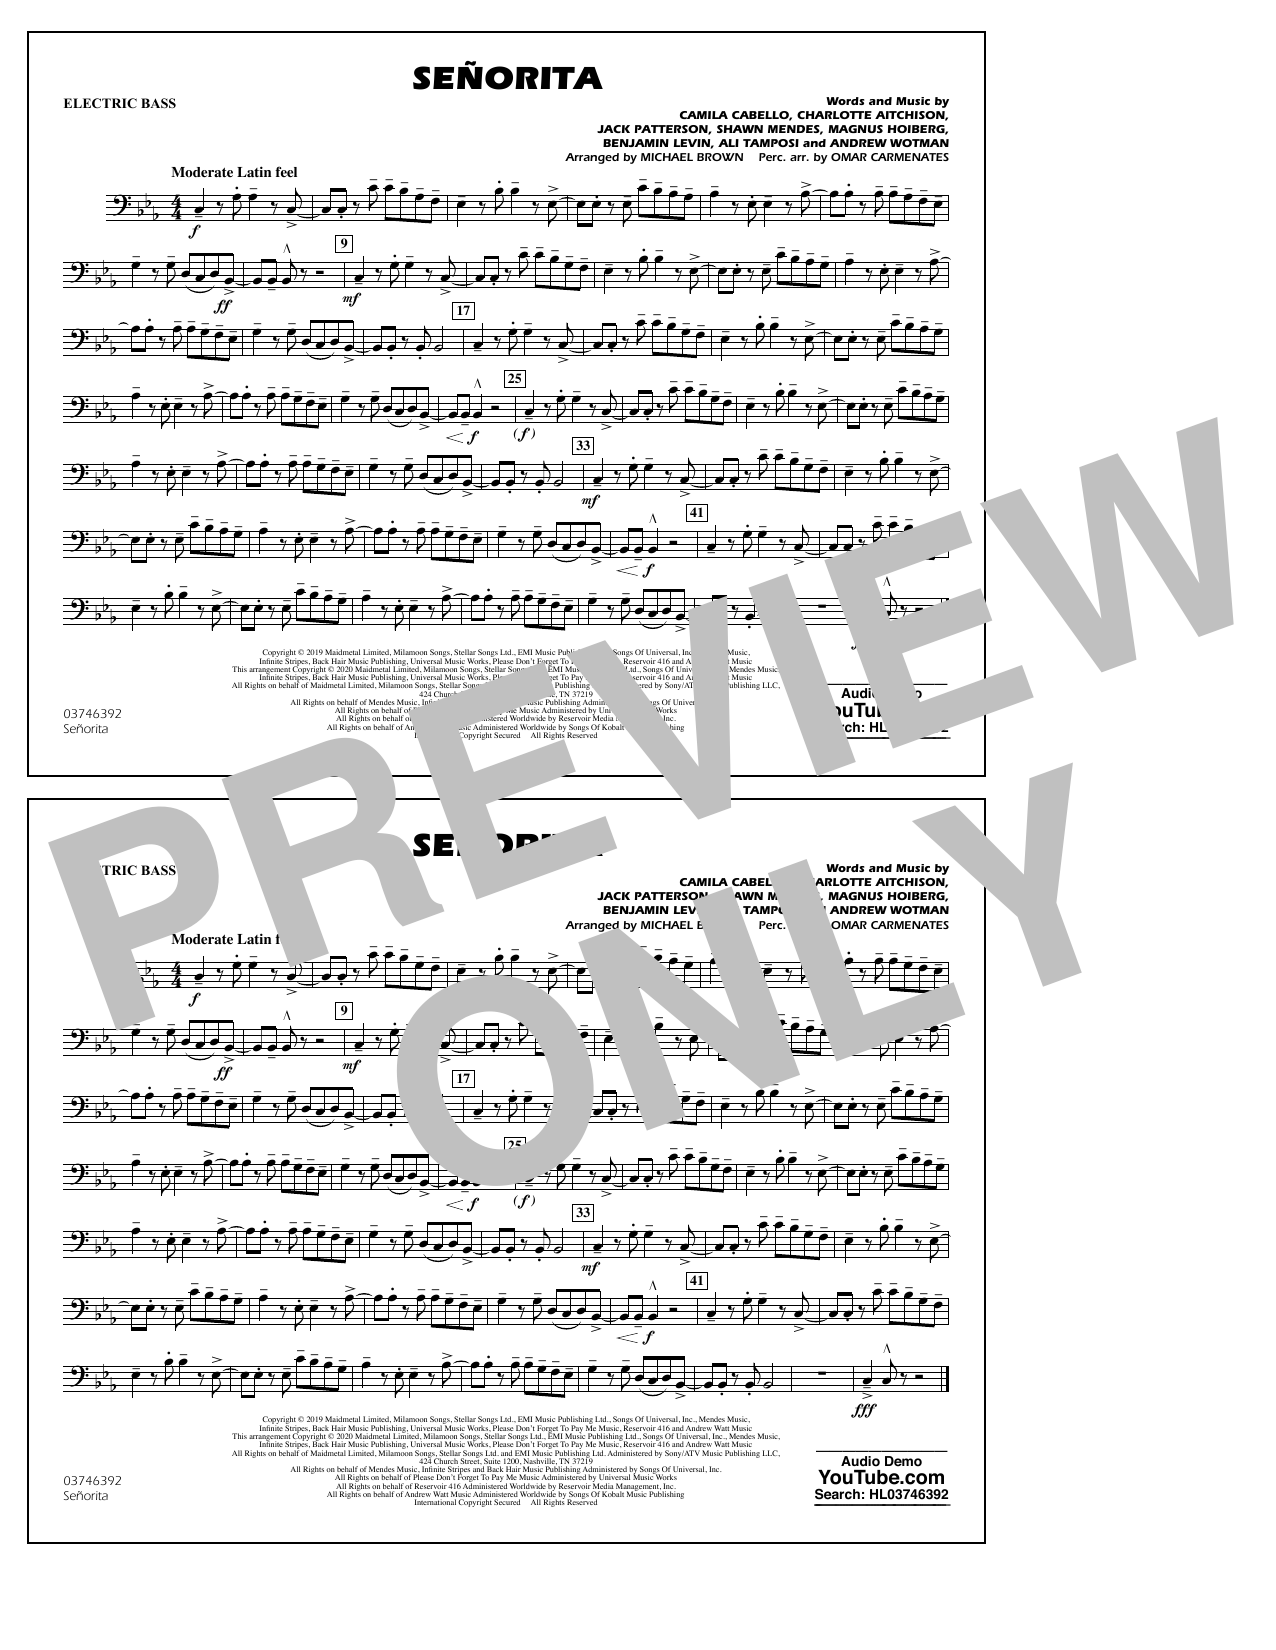 Señorita (arr. Carmenates and Brown) - Electric Bass (Marching Band)